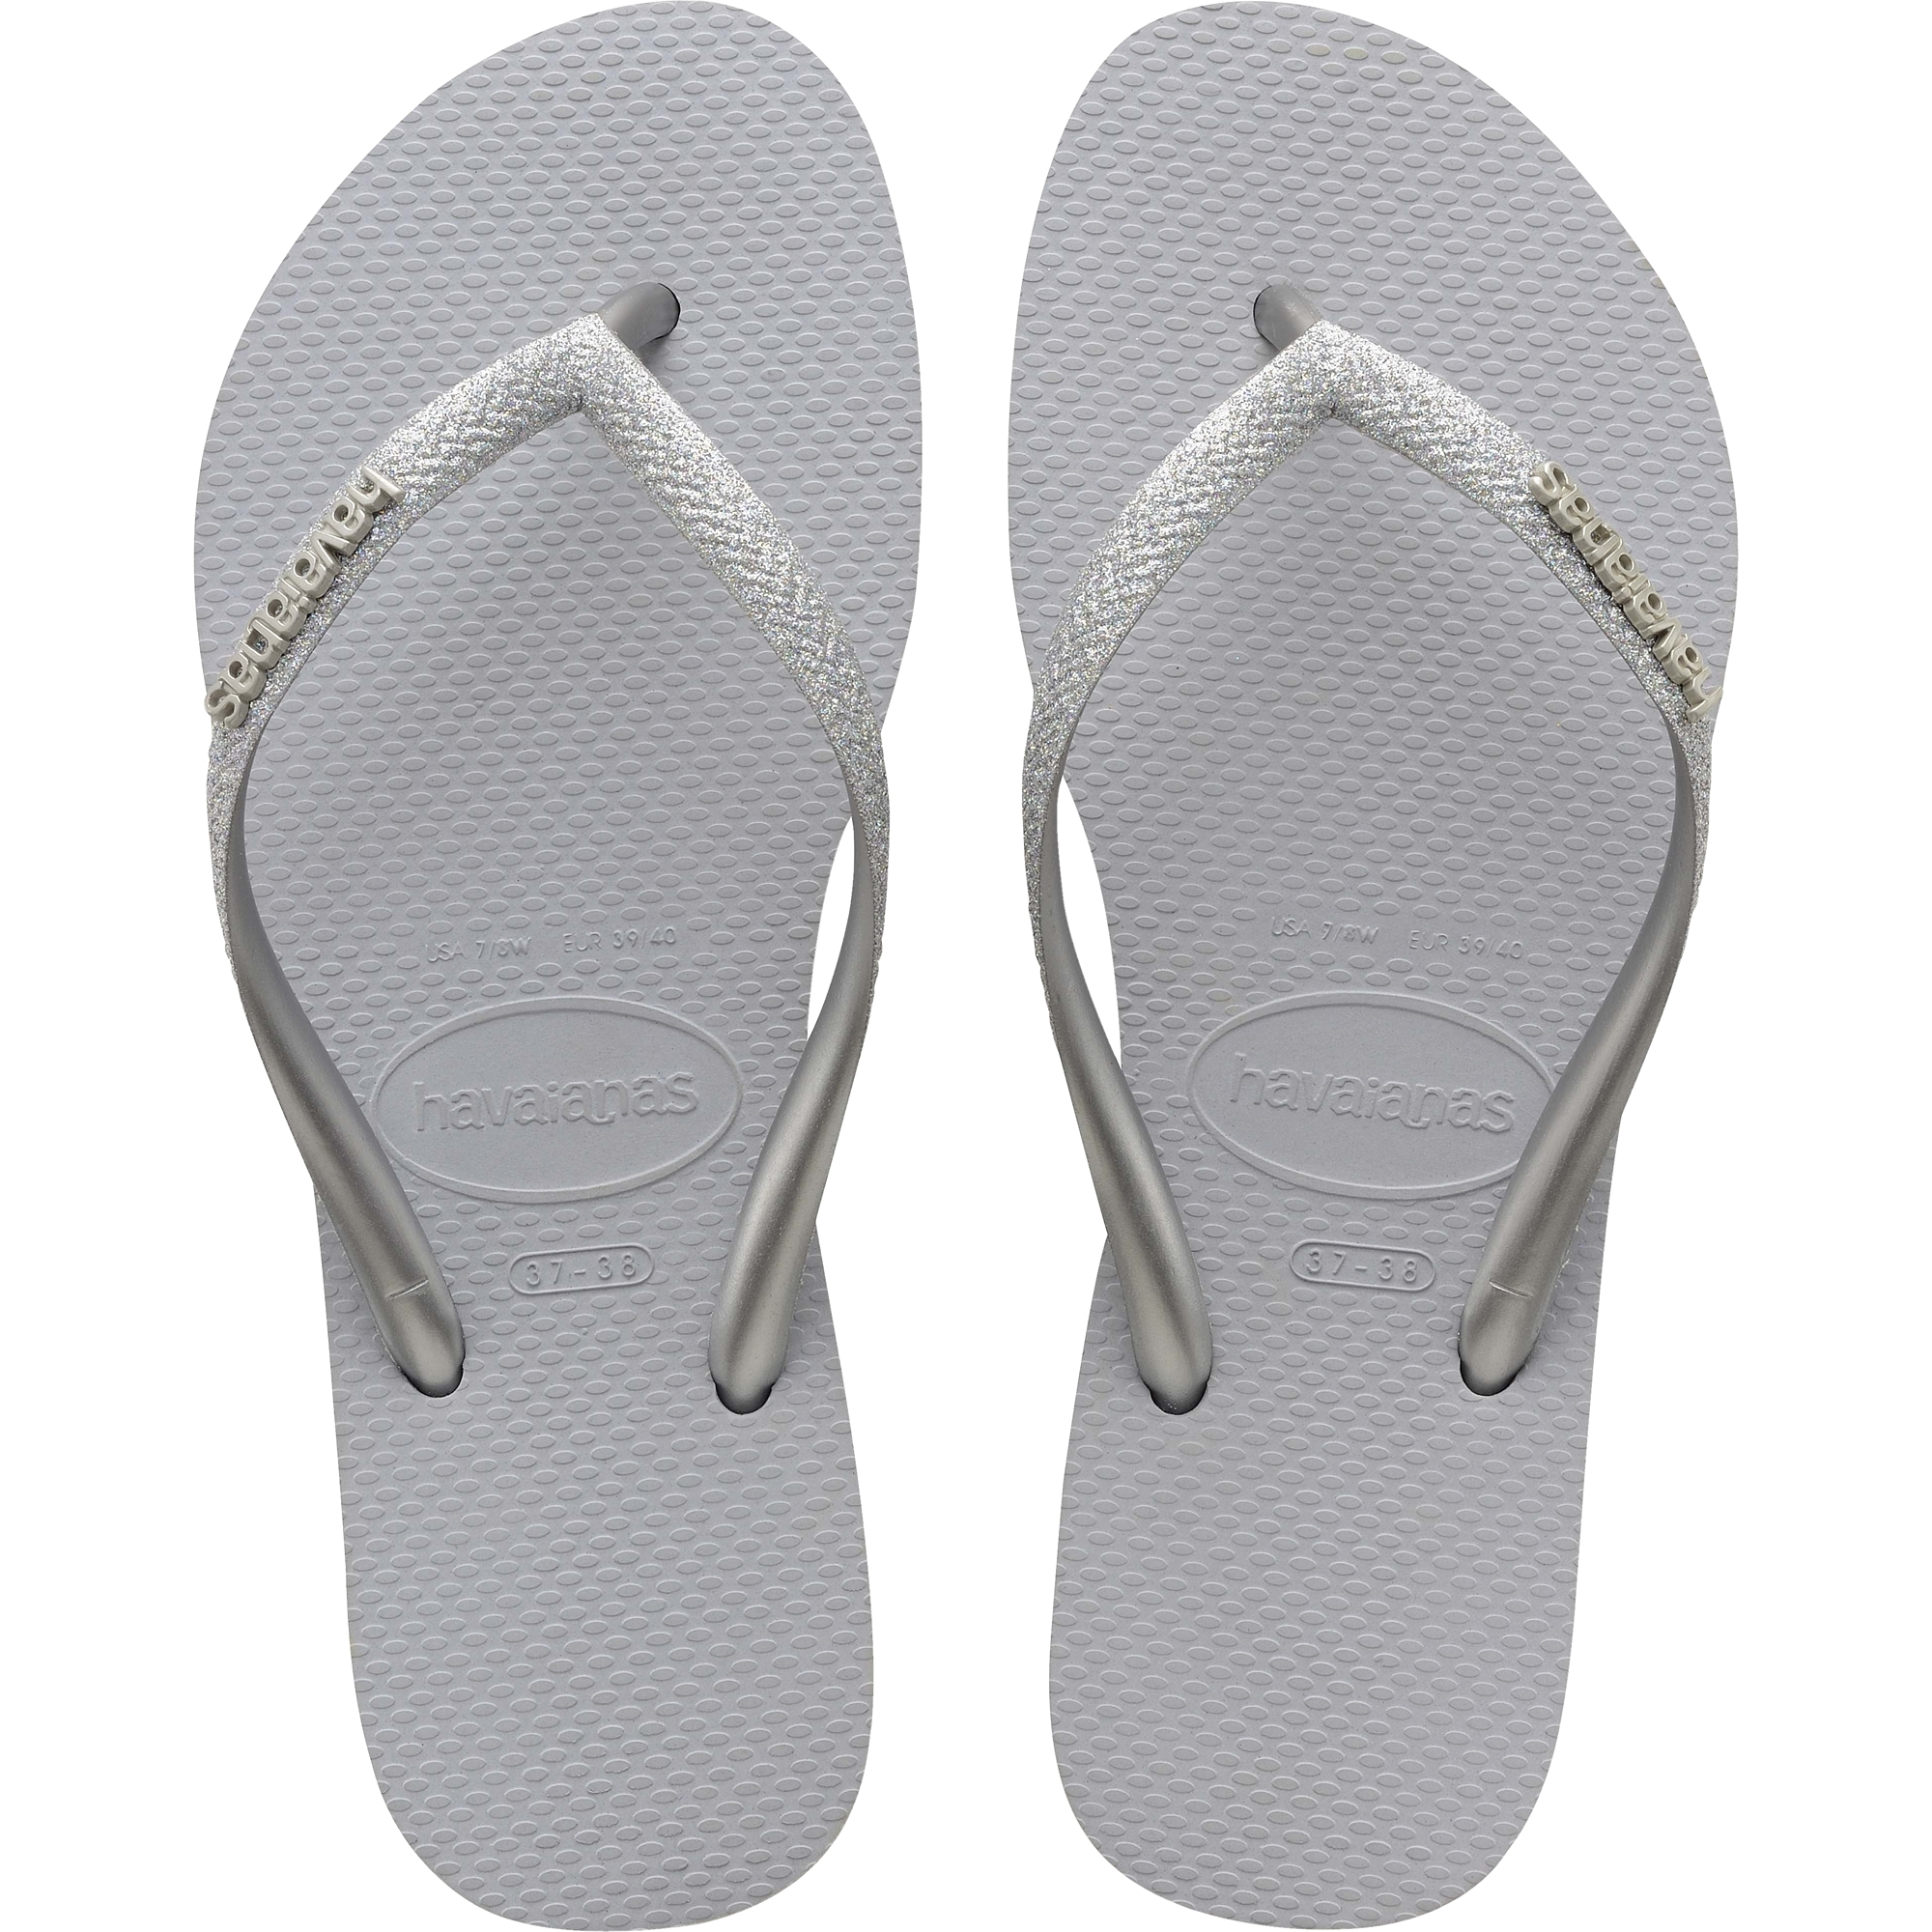 Havaianas Slim Glitter Steel Grey Rubber Adult